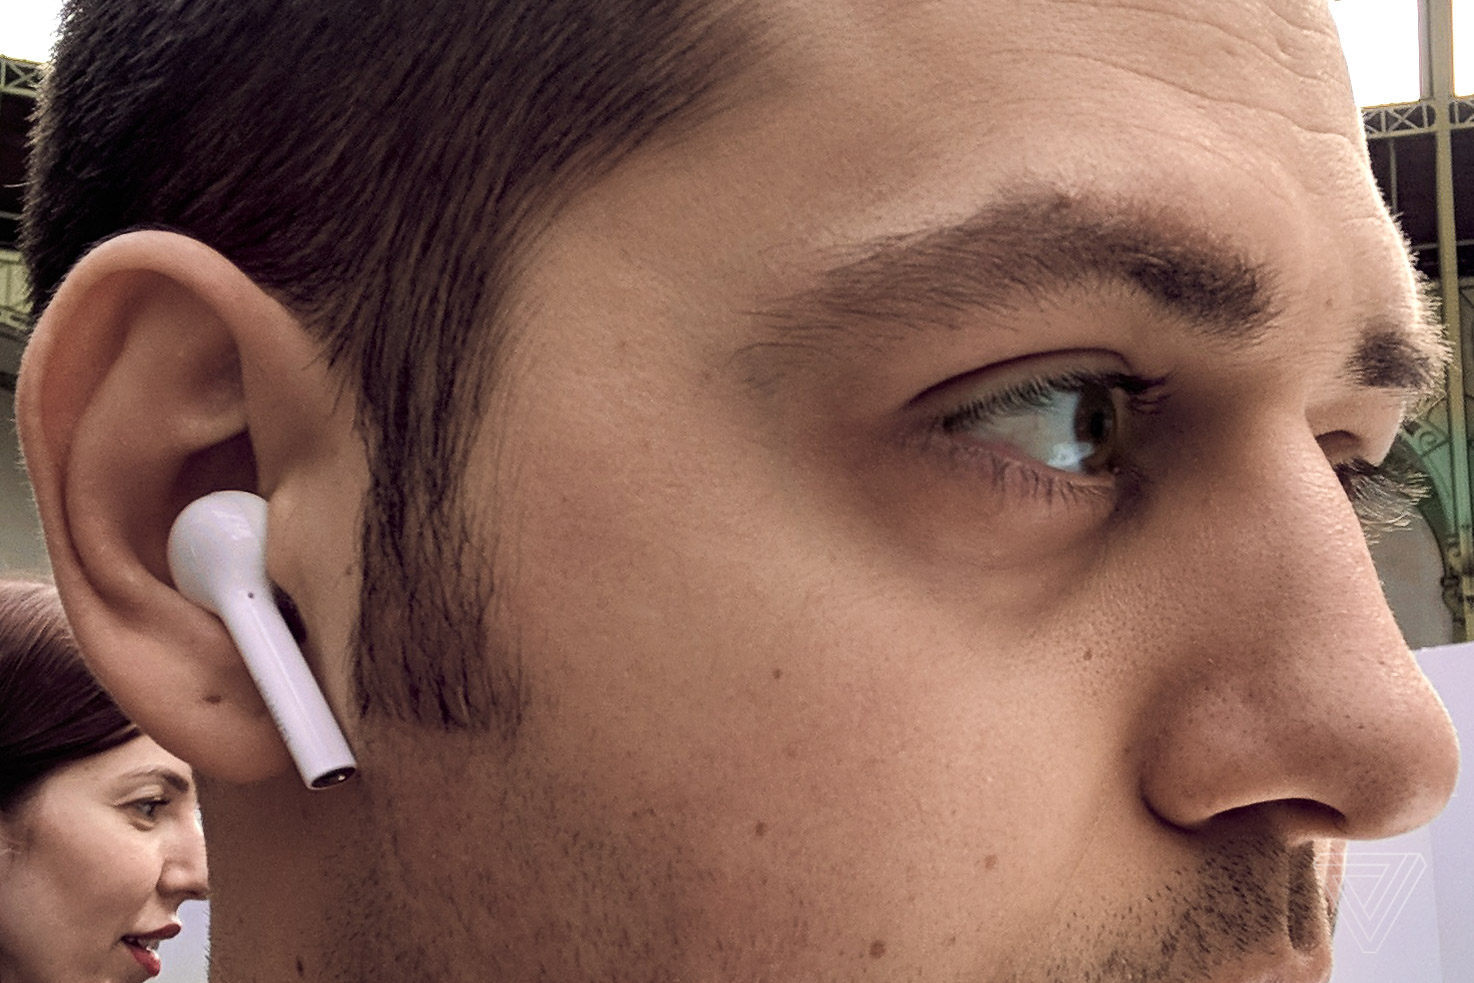 Huawei's wannabe AirPods look and feel good - The Verge